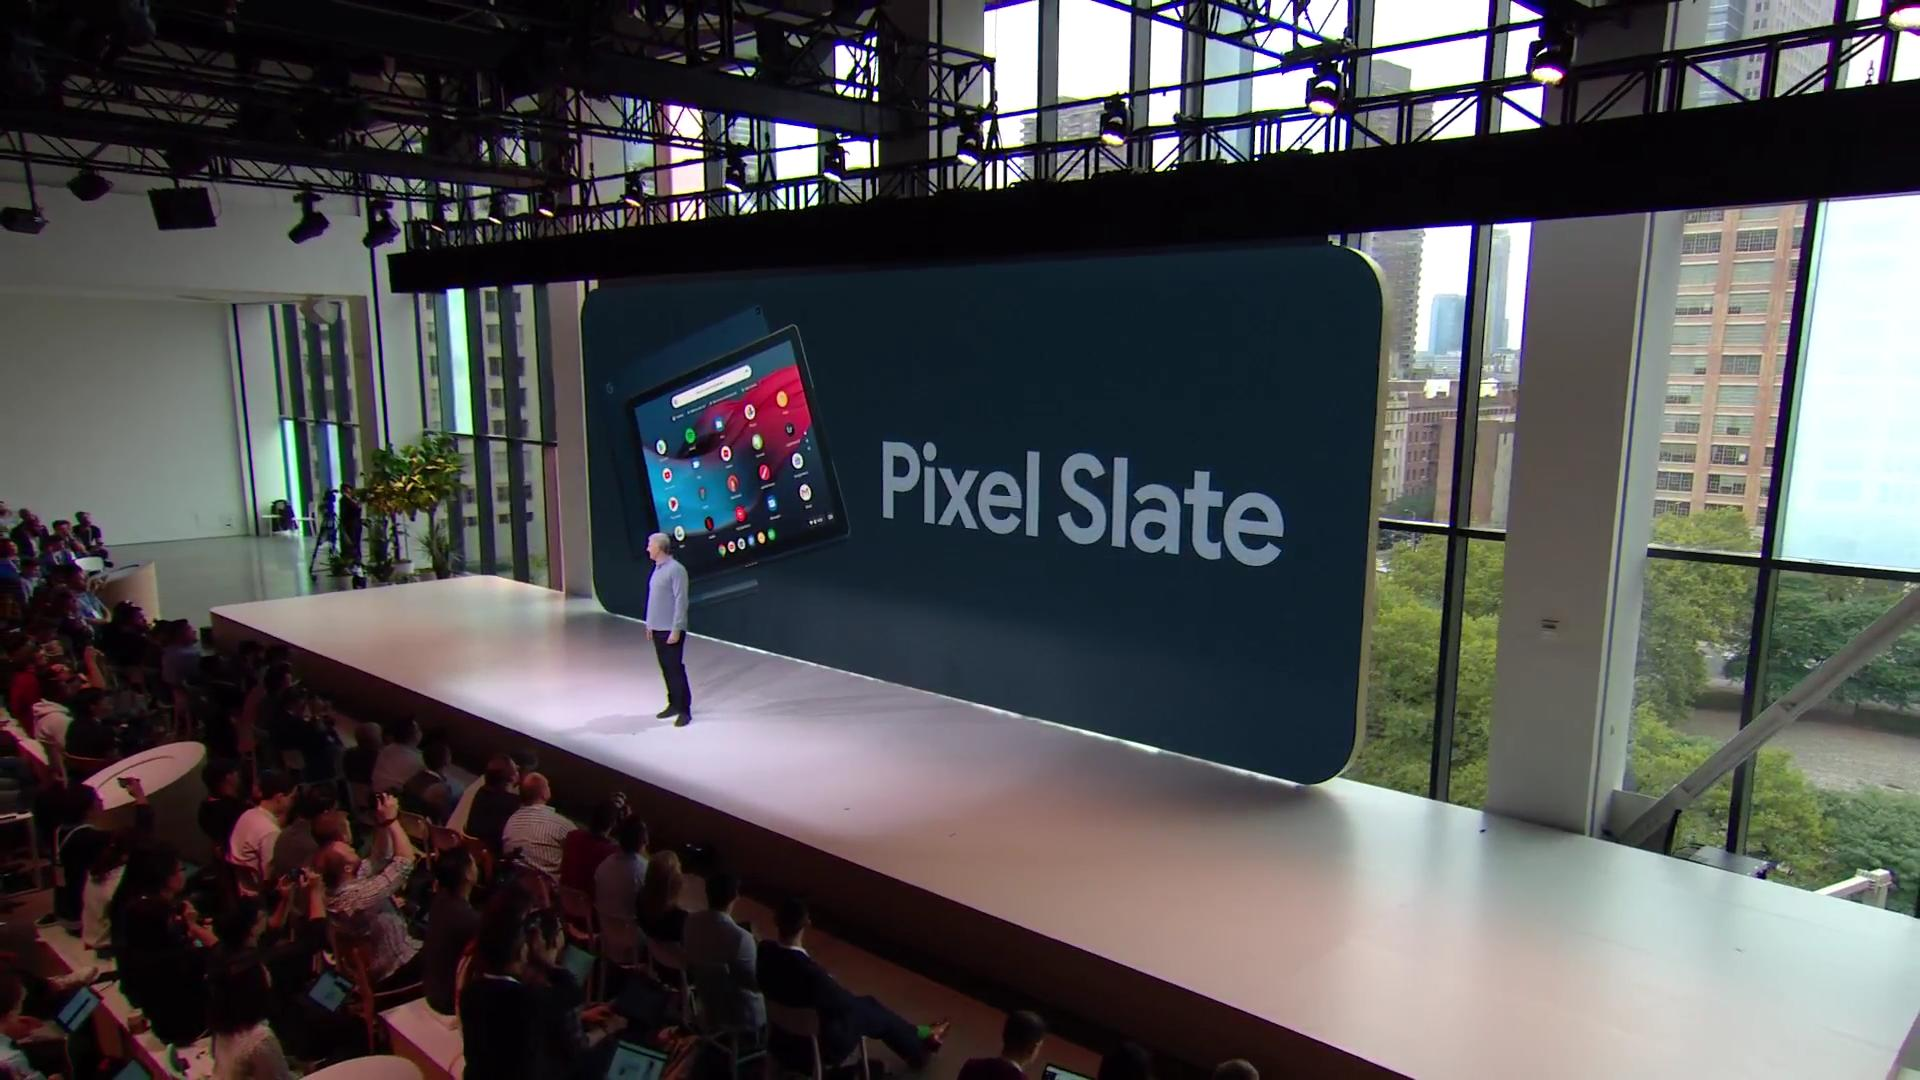 Google sprints in the 'smart home' race with Home Hub, unveils Pixel 3 phone